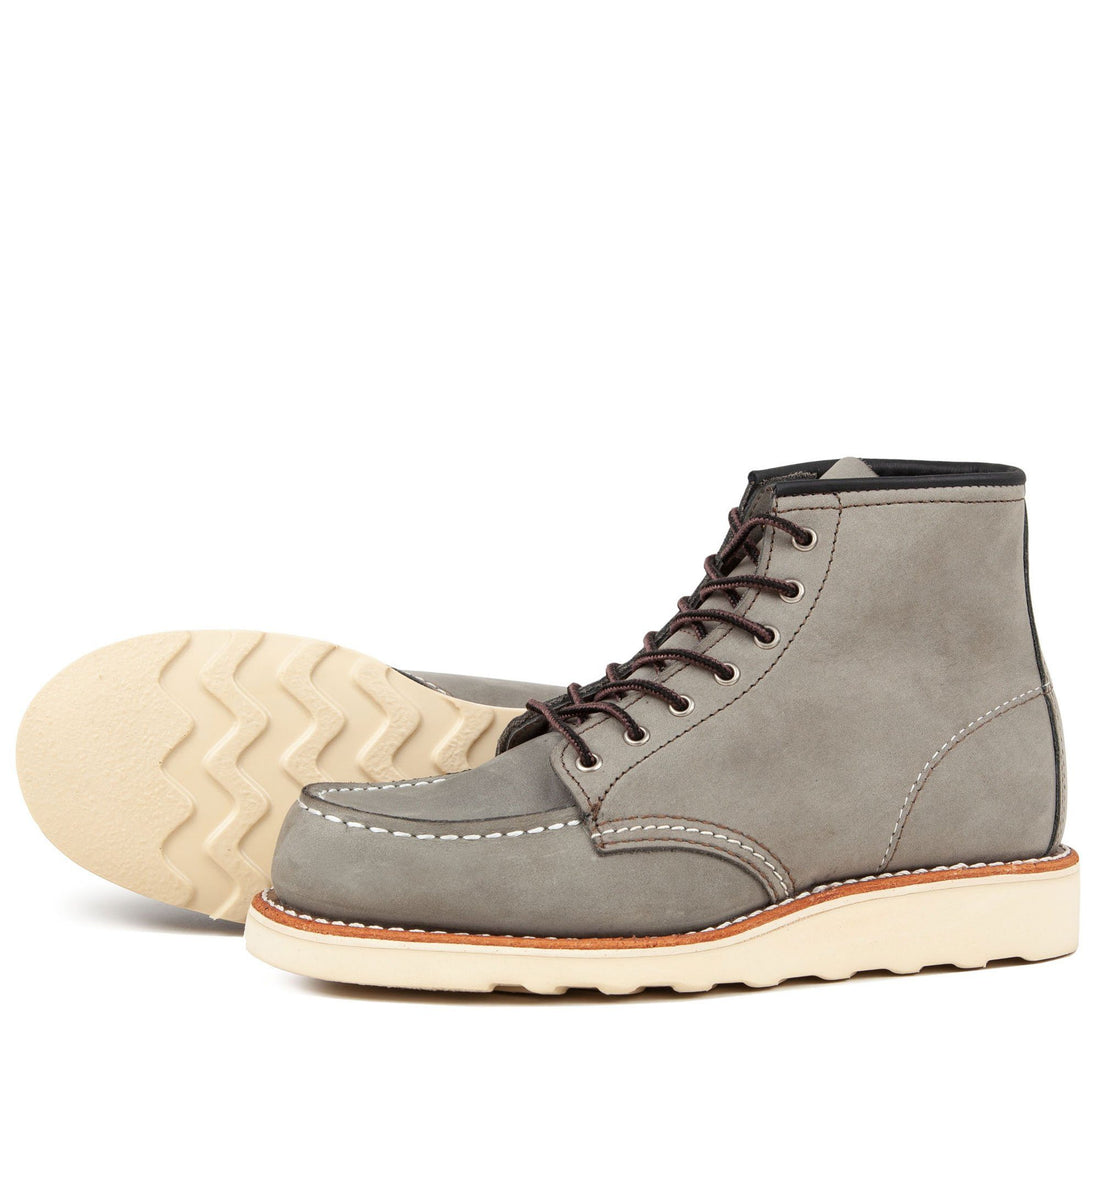 Red Wing Women's Moc Toe - Boots - Iron and Resin